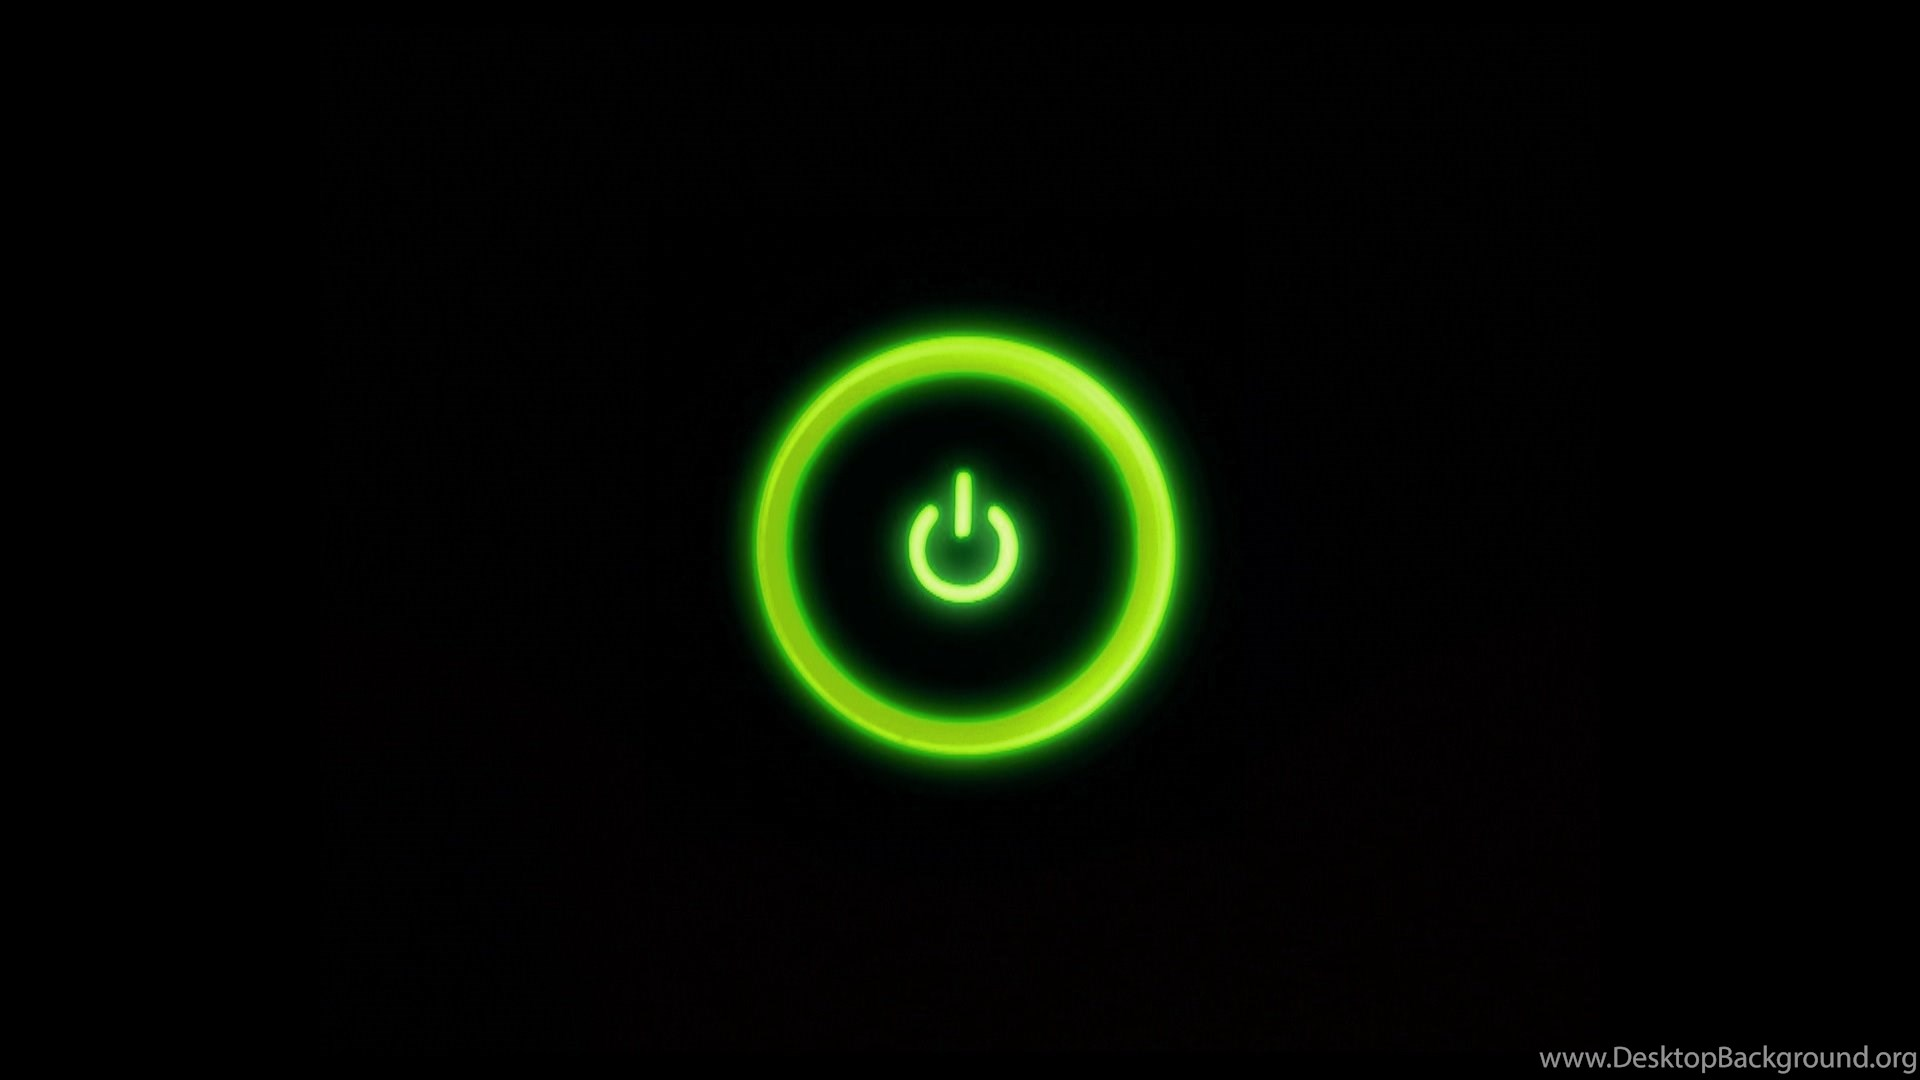 Xbox 360 Green Light Power Button HD Desktop Wallpapers Desktop